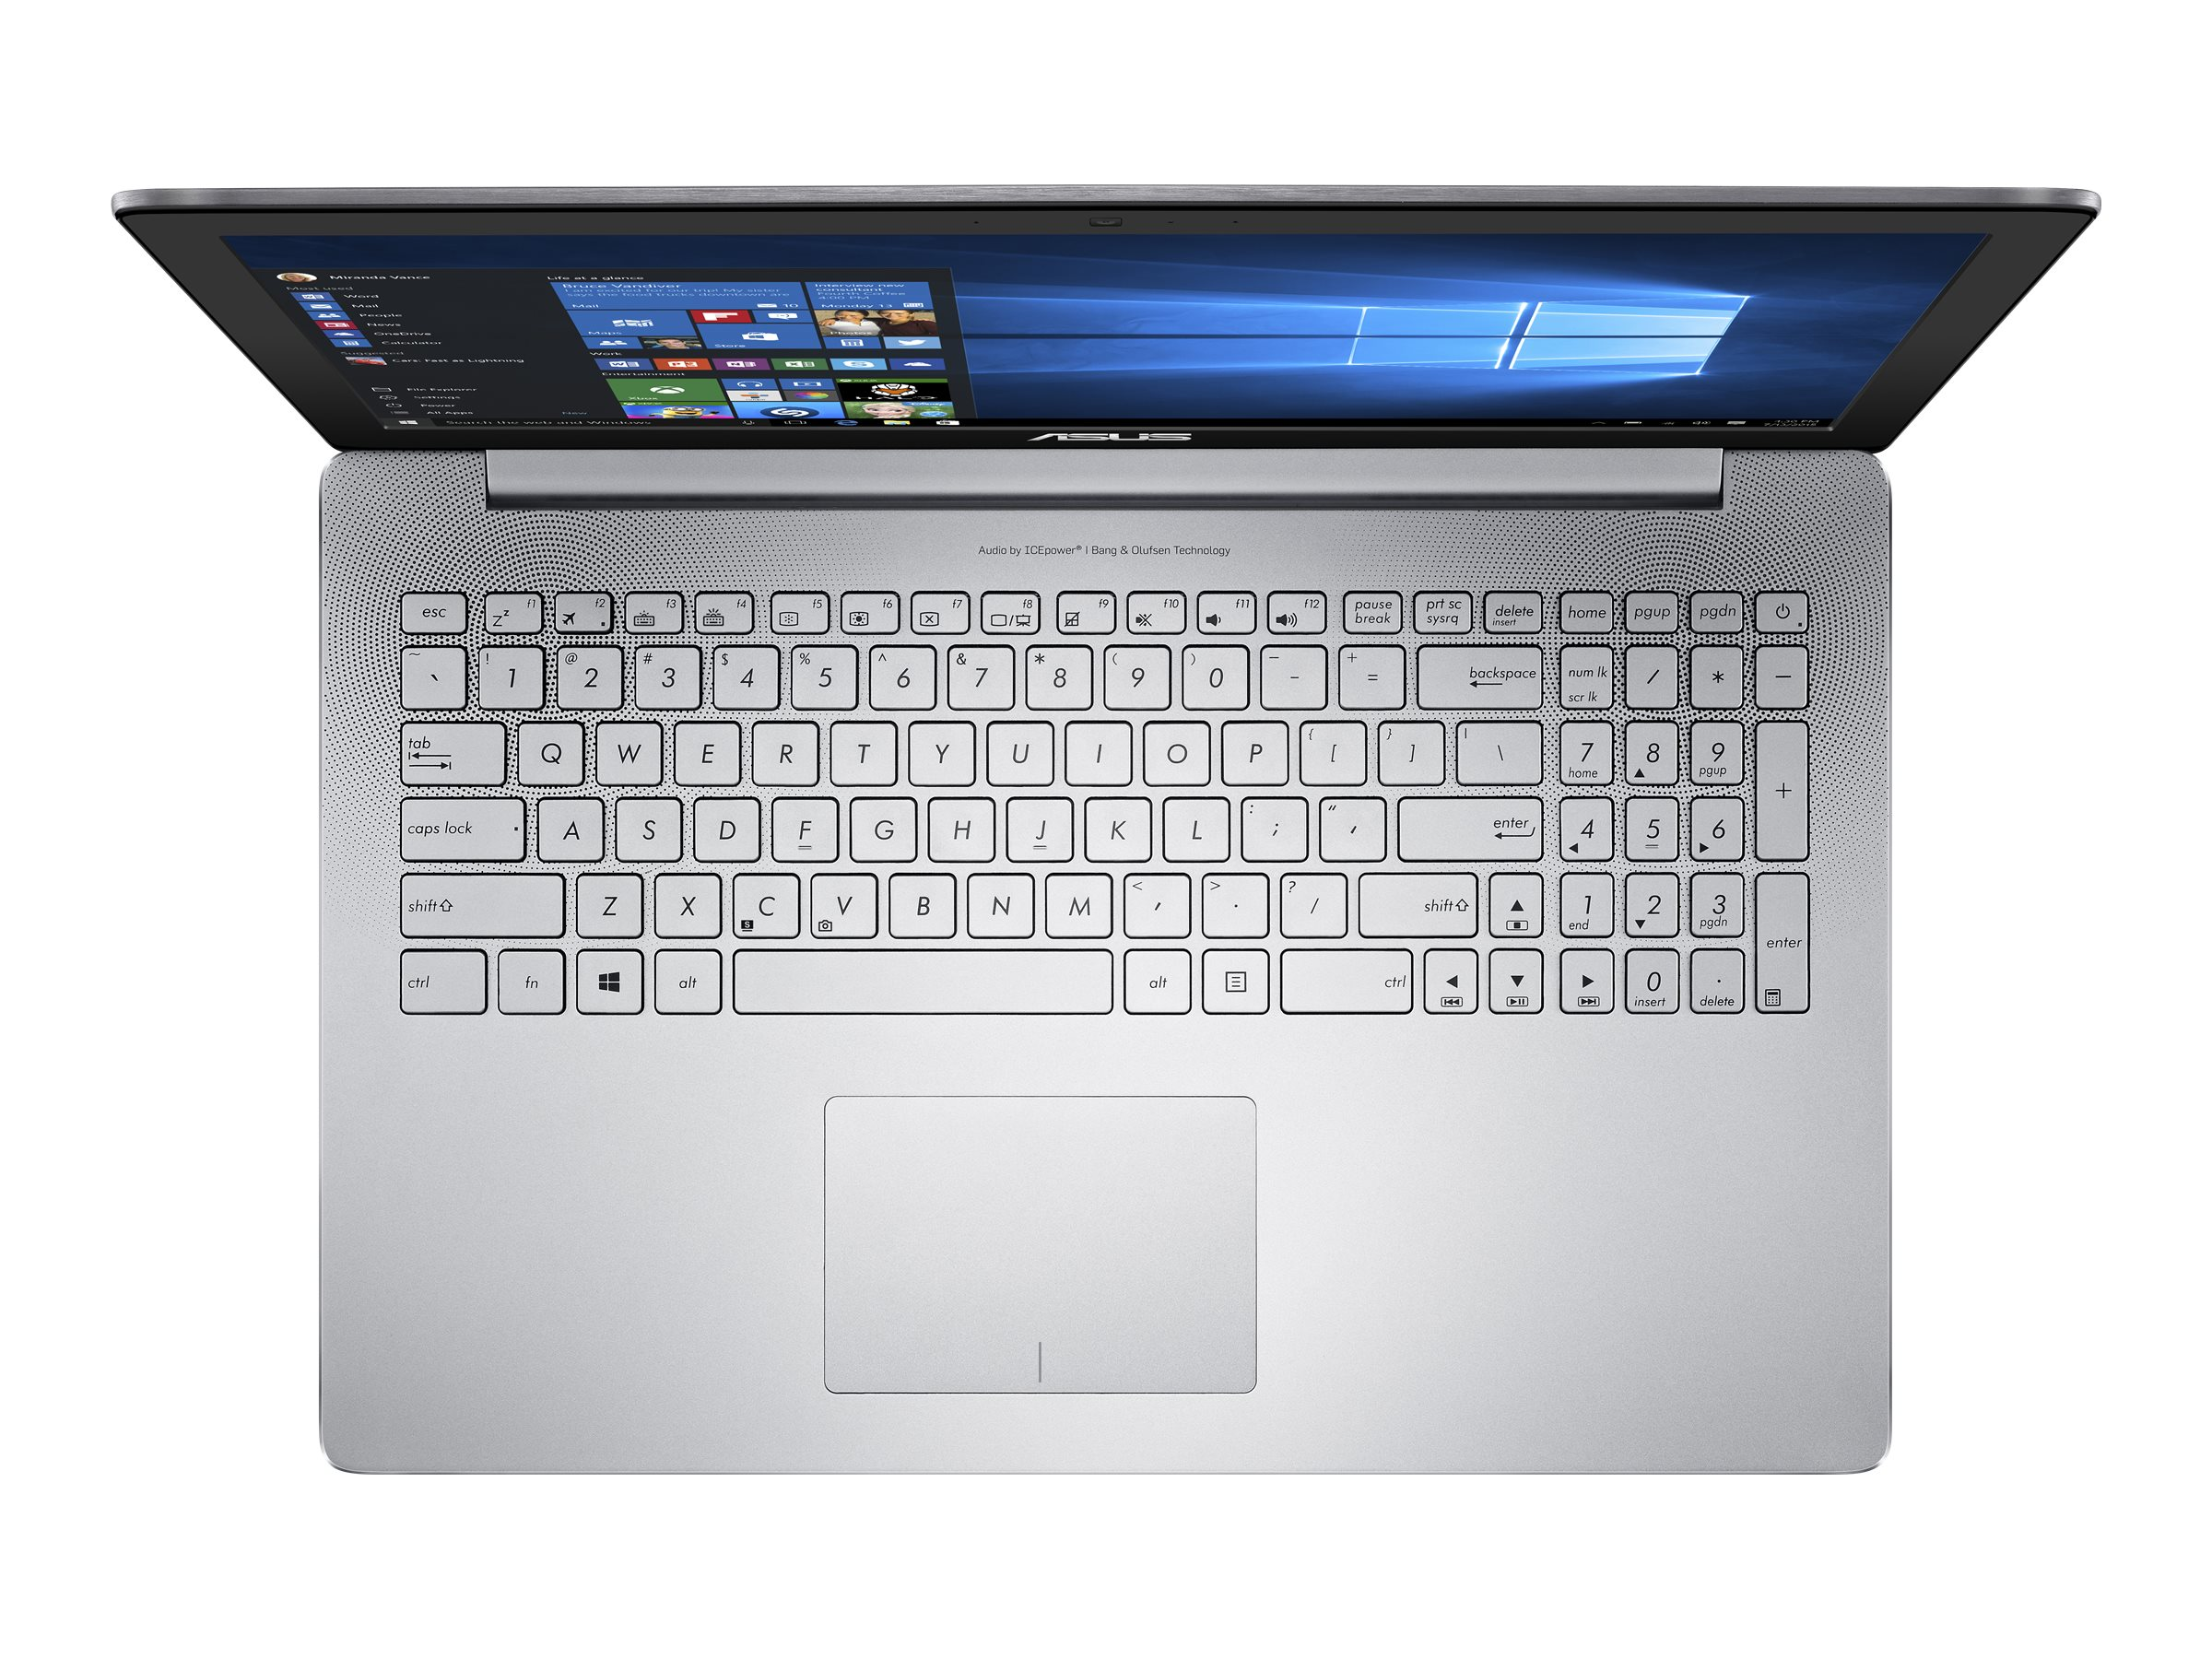 Asus Zenbook Pro Core i7 2.6GHz 16GB 512GB SSD 960M 15.6 4K MT W10H64, UX501VW-DS71T